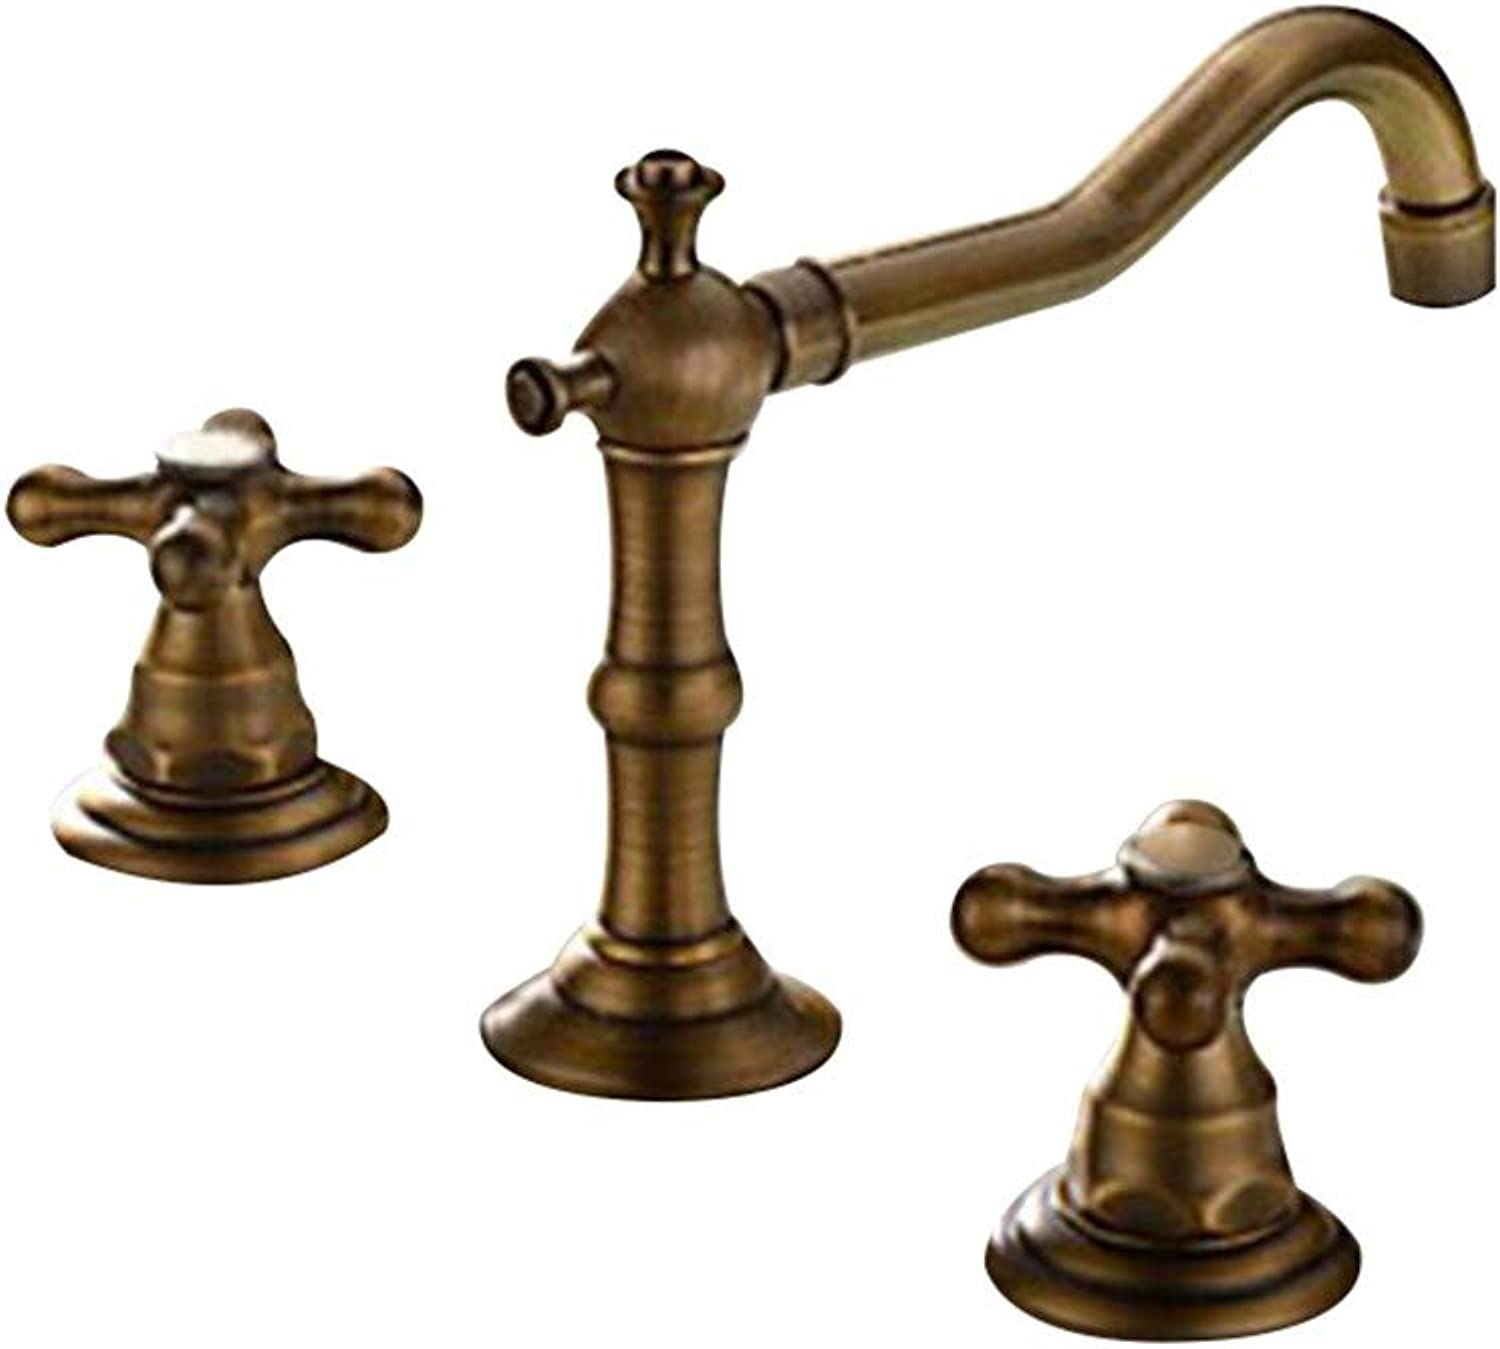 Joeyhome Antique Bronze Bathroom Wall Mounted Hot and Cold Faucets Basin Mixer Double Handle Bathroom 3 Hole Sink Mixer Taps EL7807